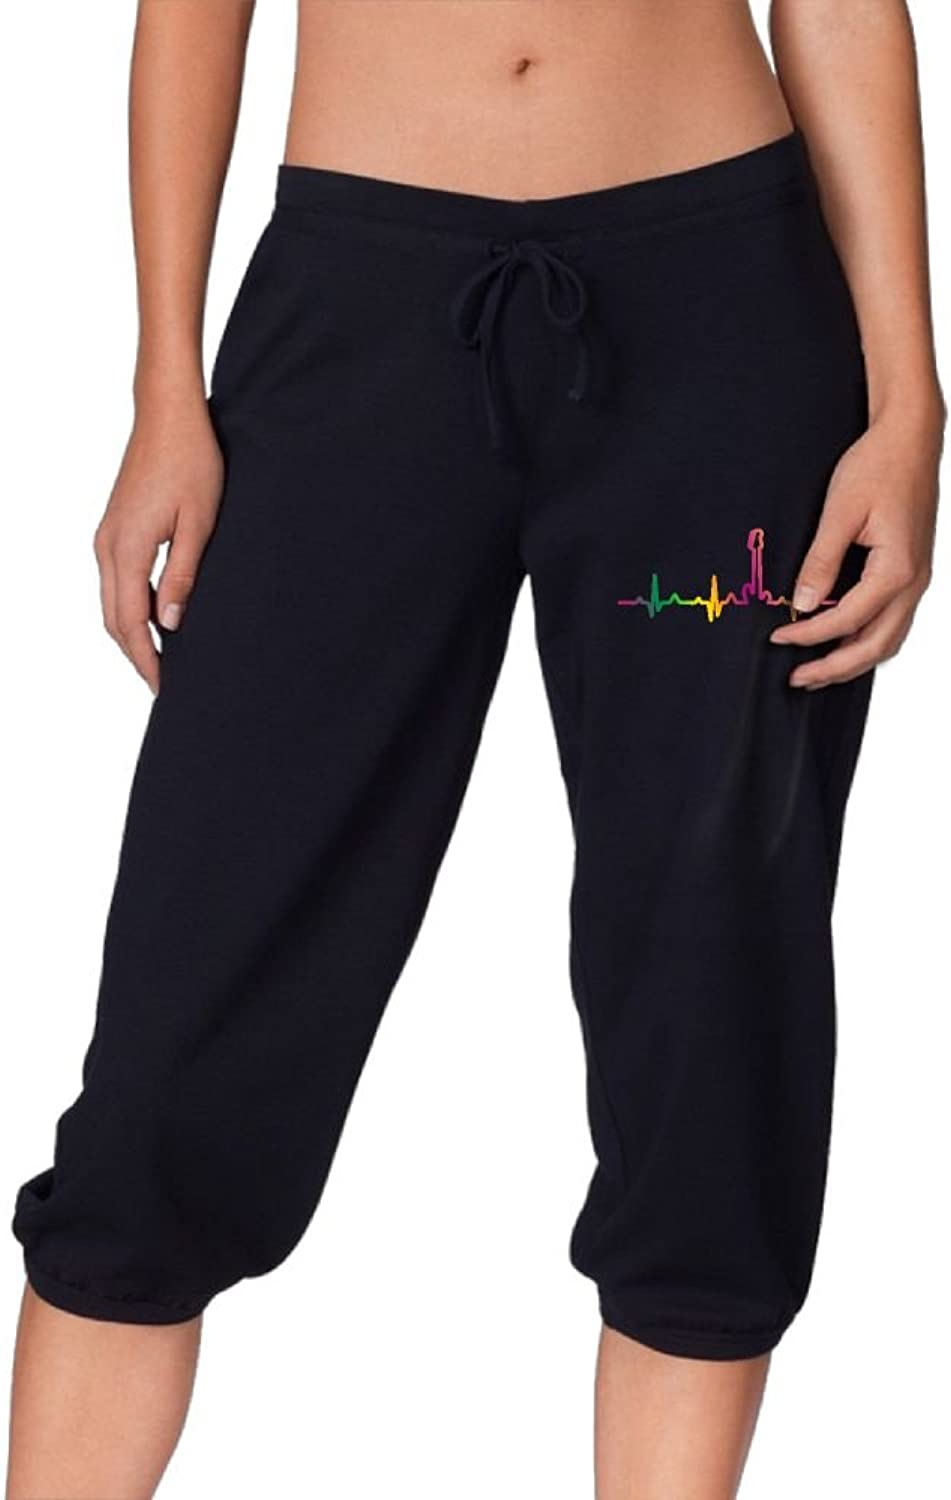 Pantsing Bass Guitar Player Hearbeat Women's Fit Active French Terry Capri Pants